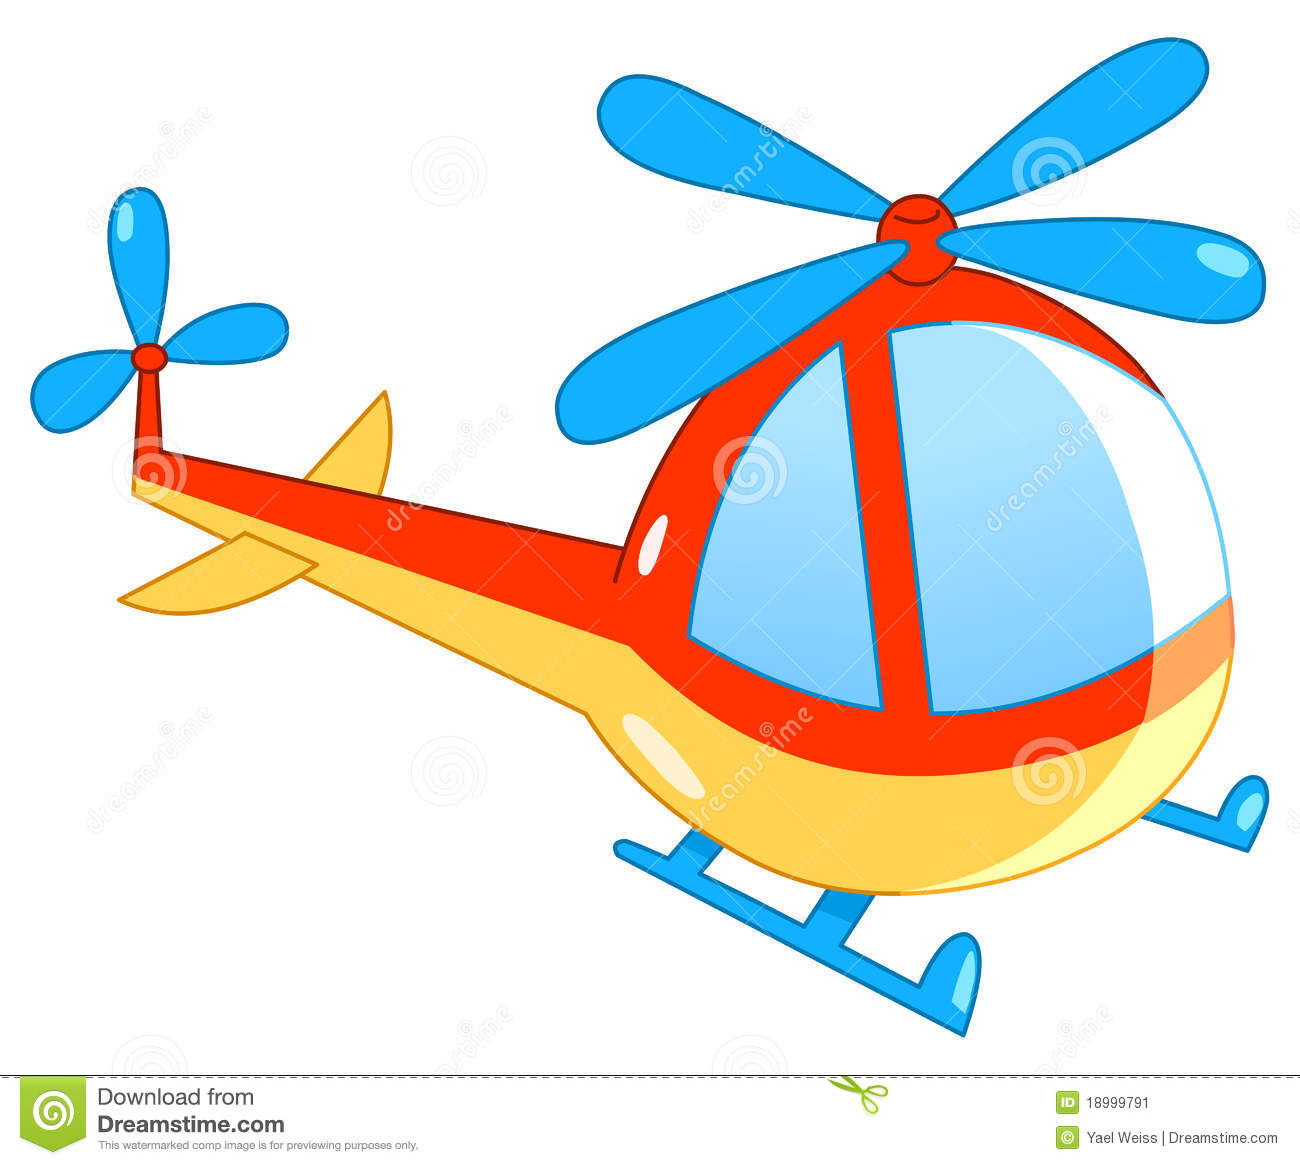 toy plane clip art with Stock Afbeelding Helikopter Image18999791 on Royalty Free Stock Image Large Vector Set Cute Transportation Vehicles Equipment Image38908136 as well Royalty Free Stock Photography Aircraft Banner Image26415907 besides Clipart Paper Airplane besides Fireworks Clipart Transparent furthermore Airplane Clipart.